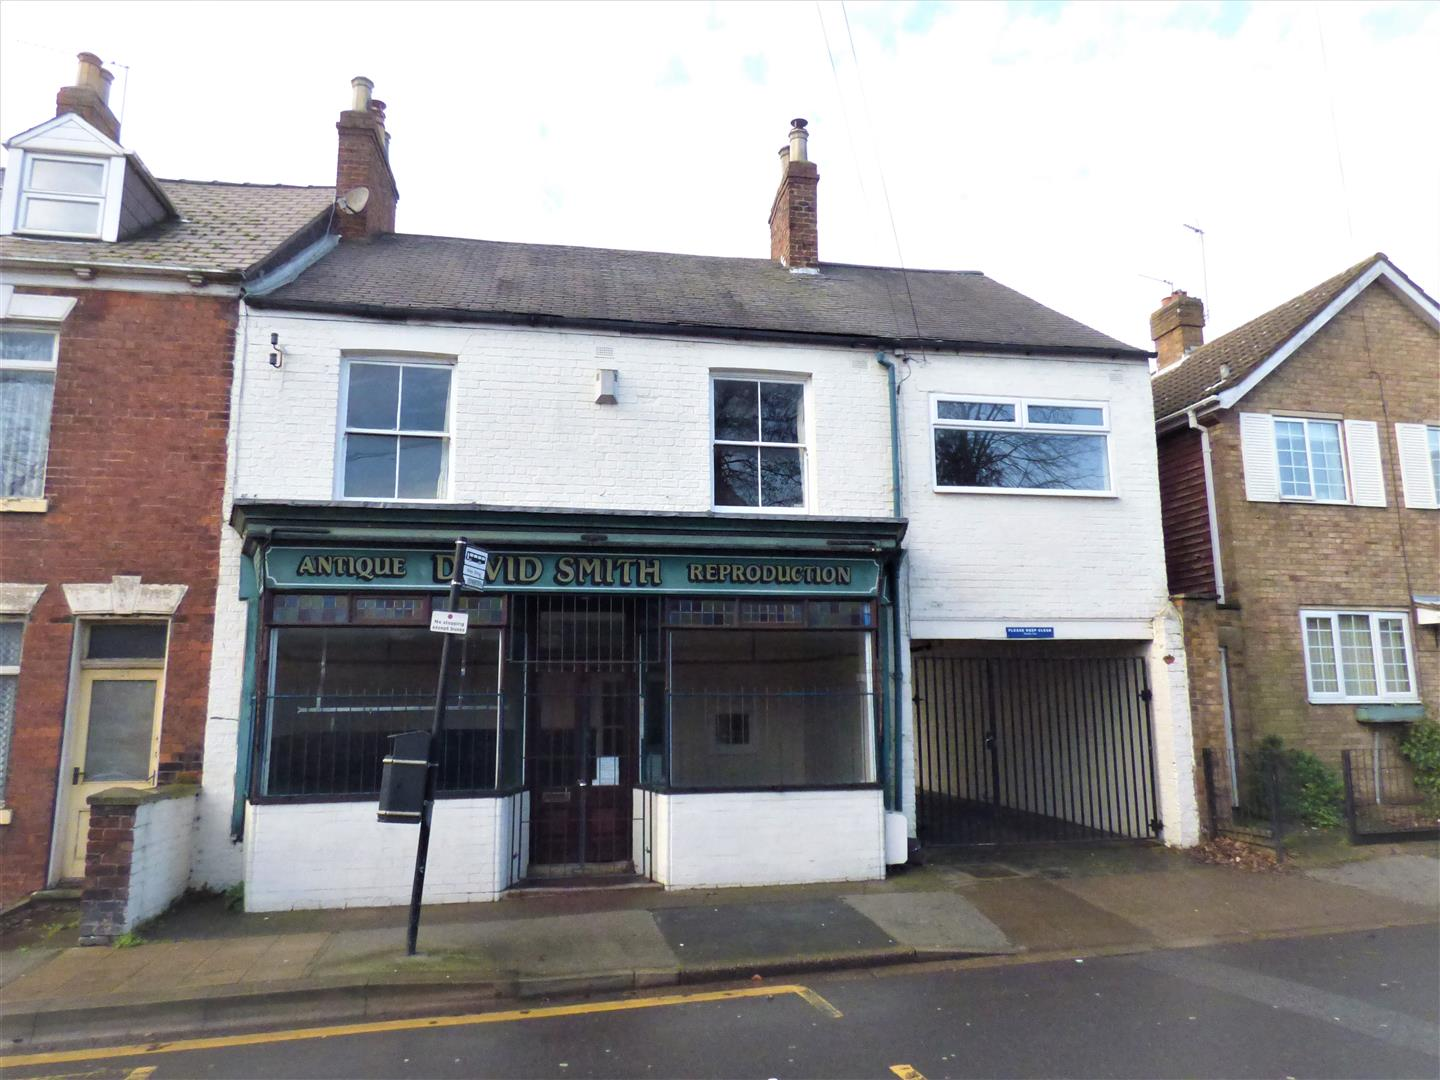 22-24 College Street, Sutton-On-Hull, Hull, 22-24, HU7 4UP